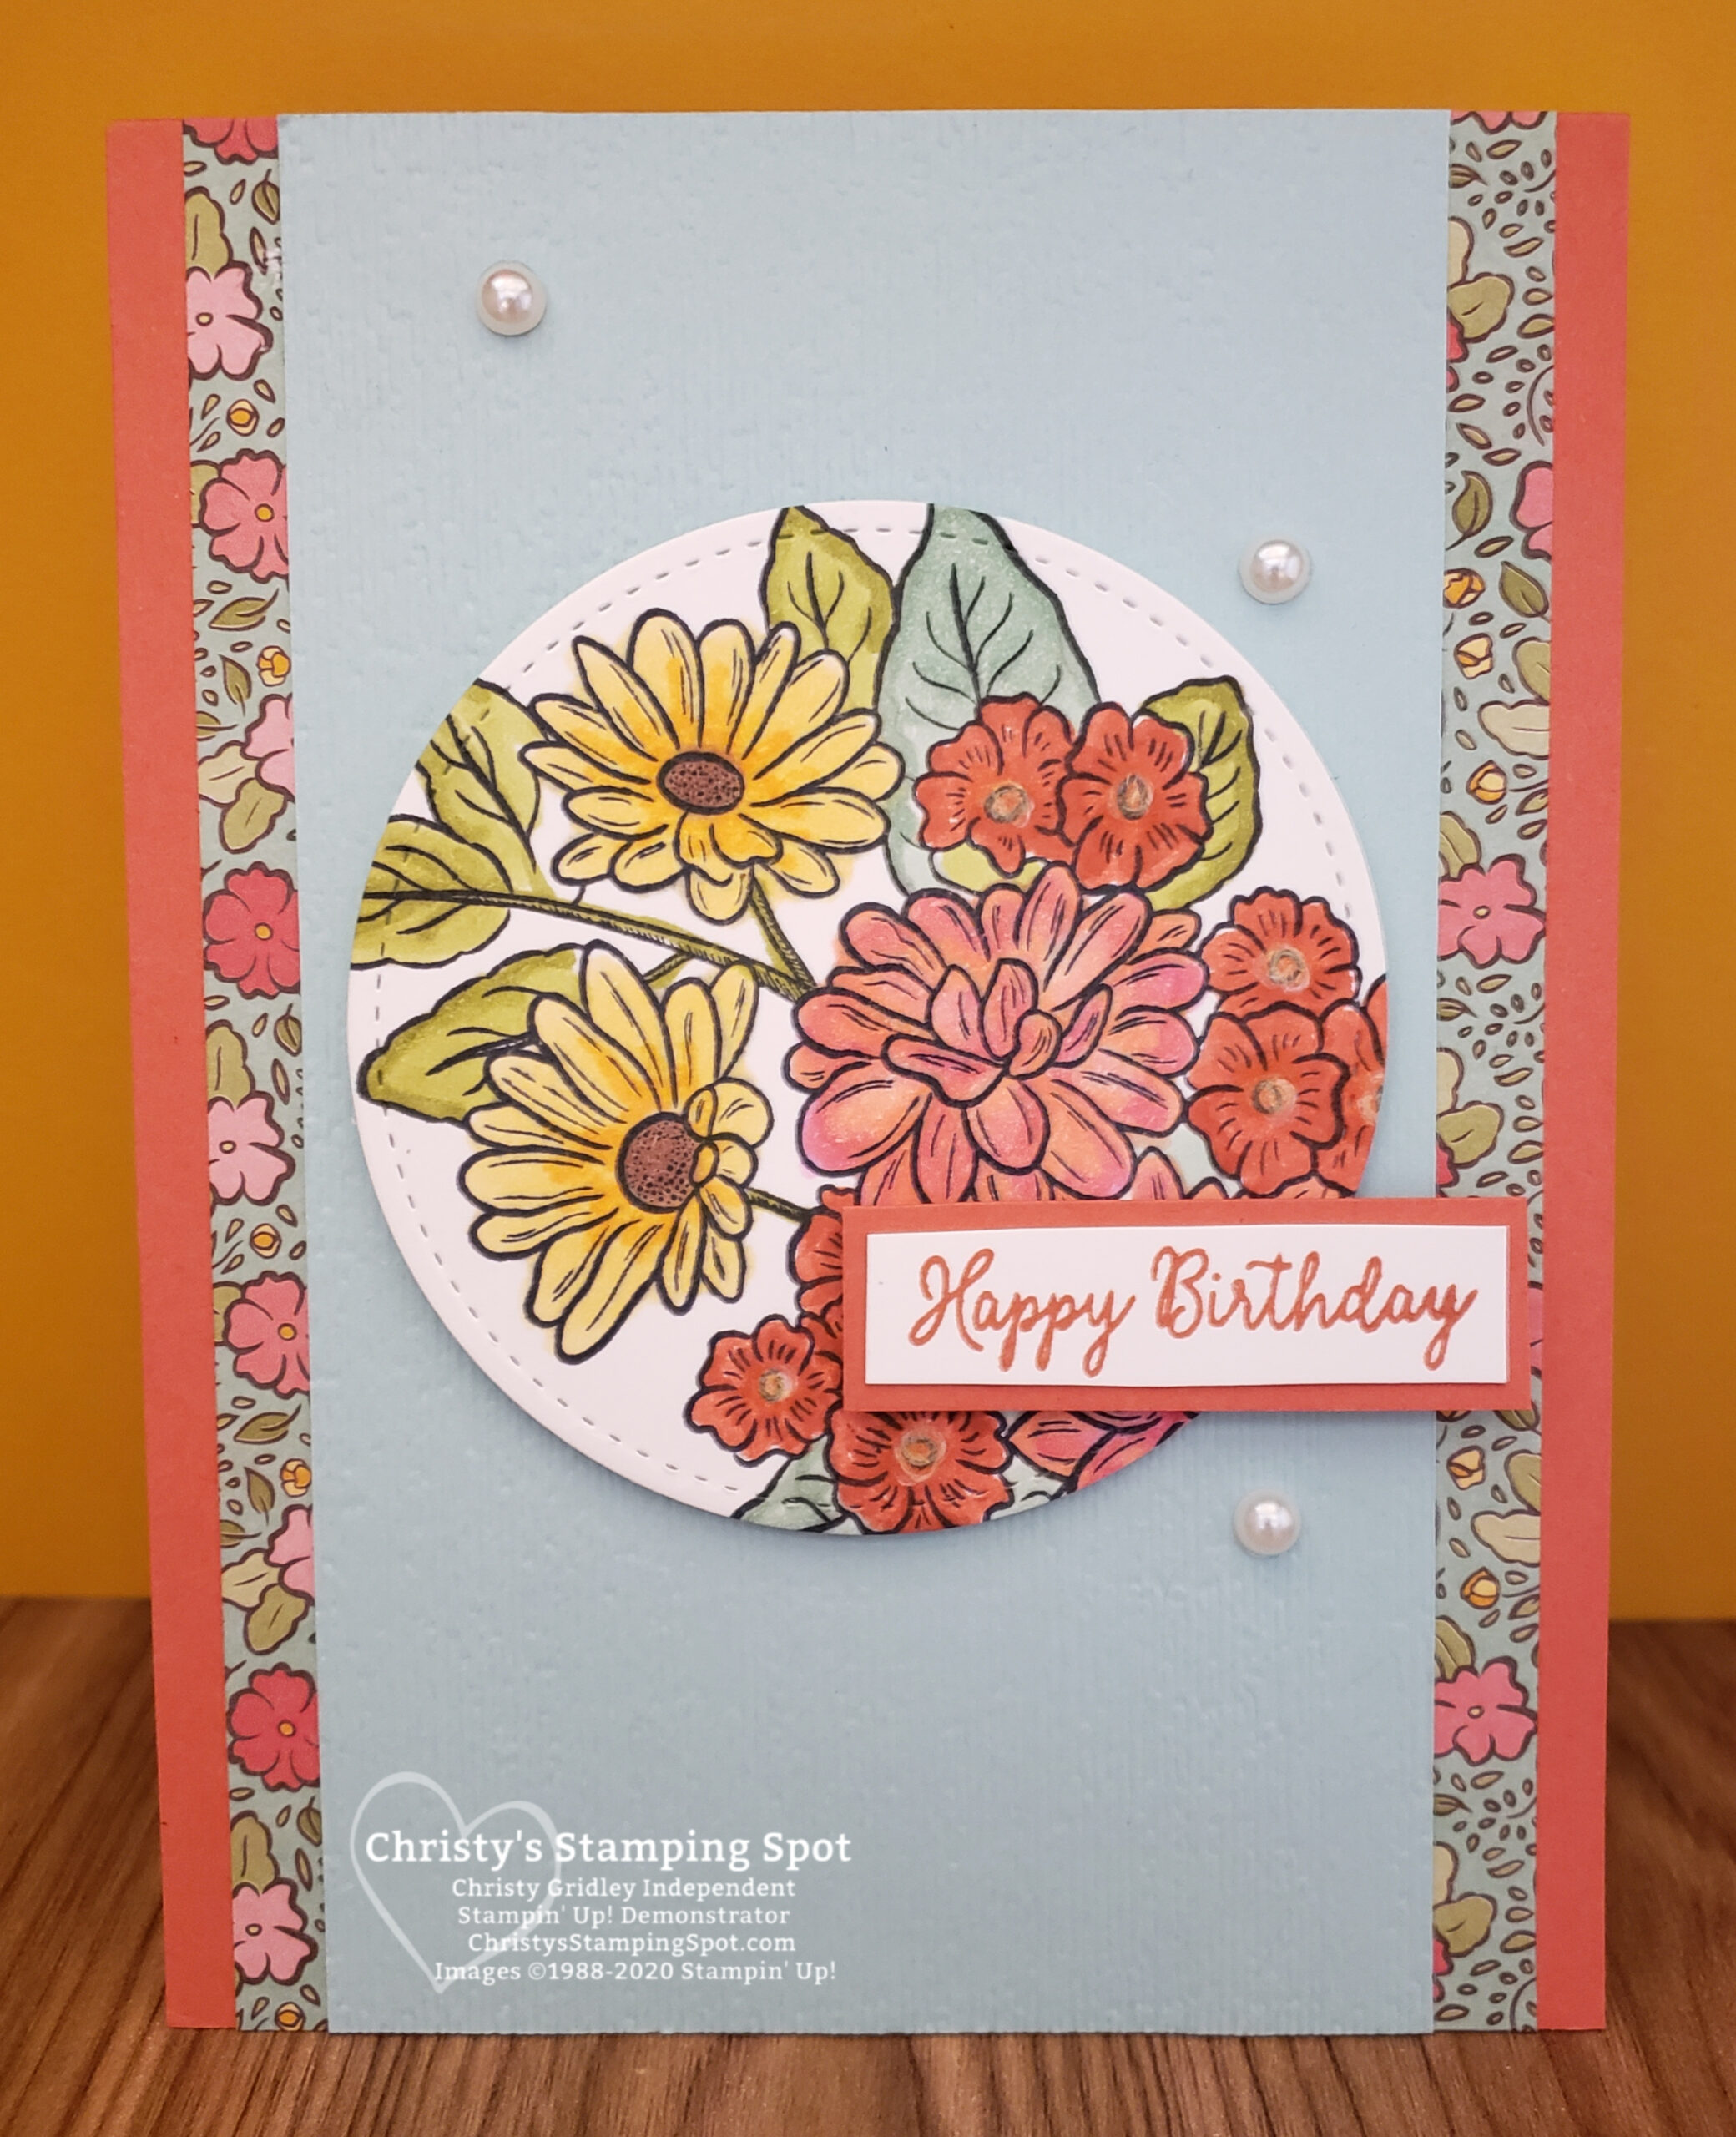 Stampin' Up! Ornate Style stamp set, Special Someone stamp set, Ornate Garden Specialty DSP, Stitched Shapes dies, and Subtle 3D embossing folder. #OrnateGardenSuite